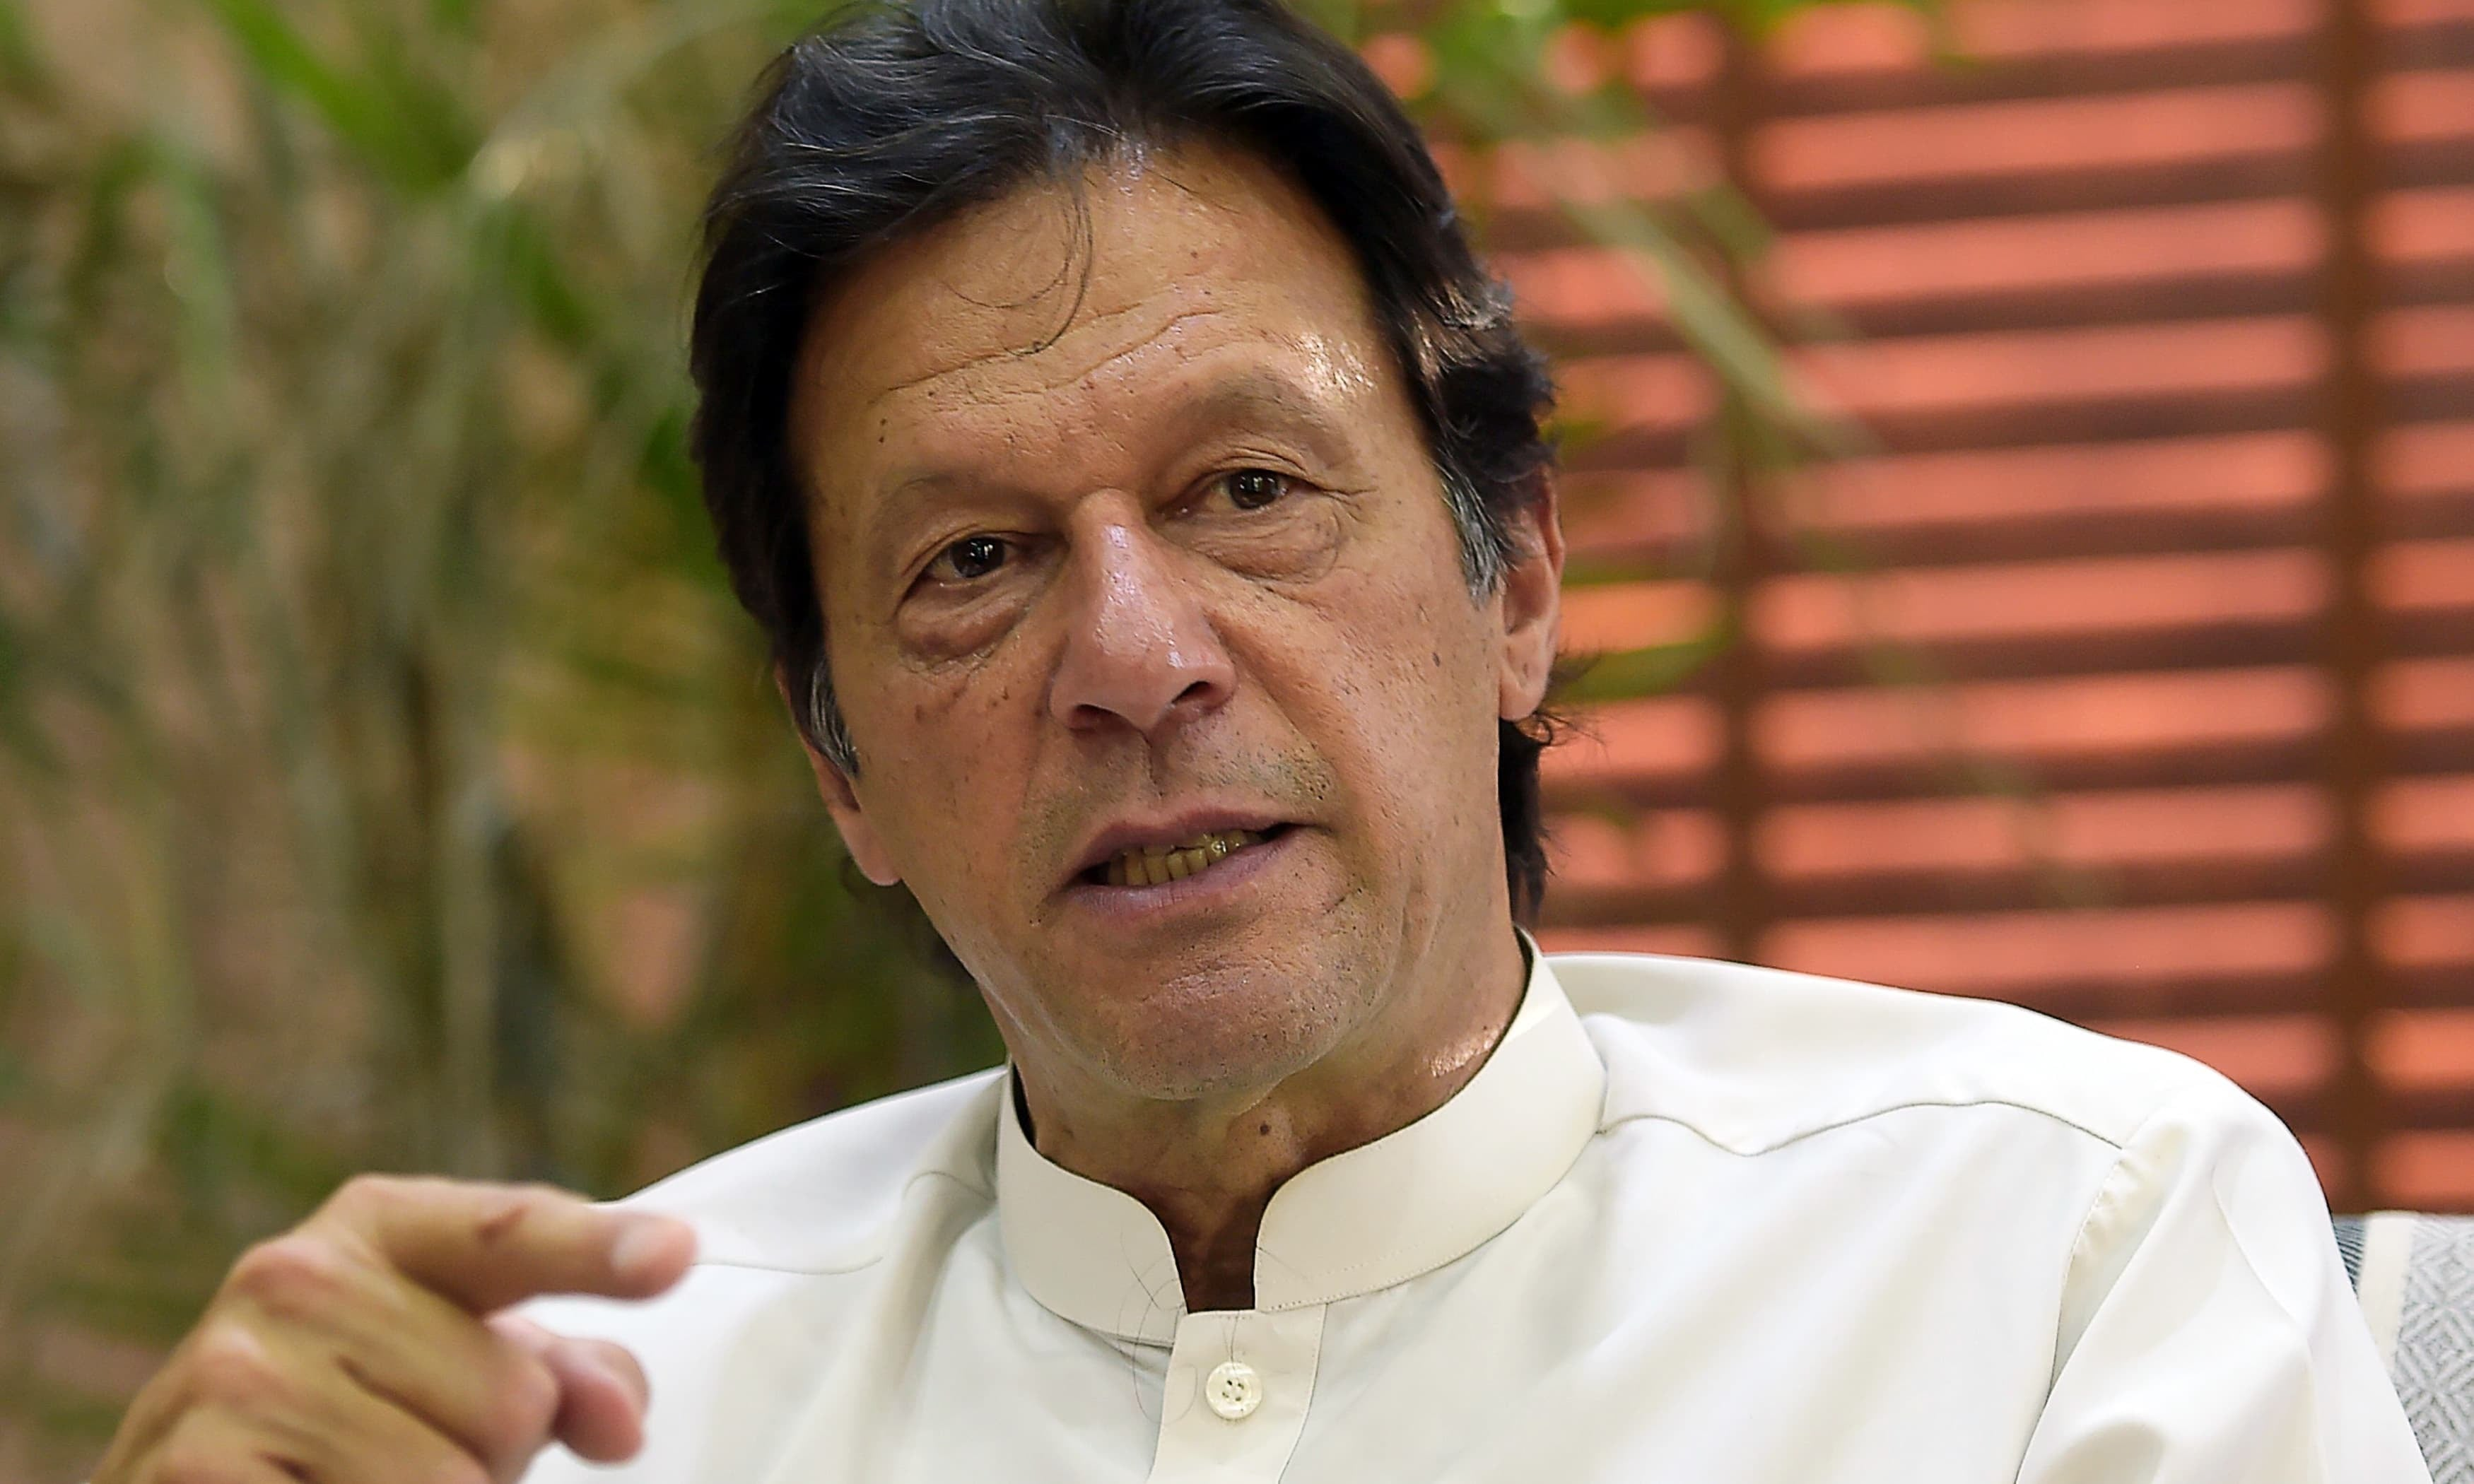 'Condemnable' Nankana Sahib incident against my vision, says PM Imran